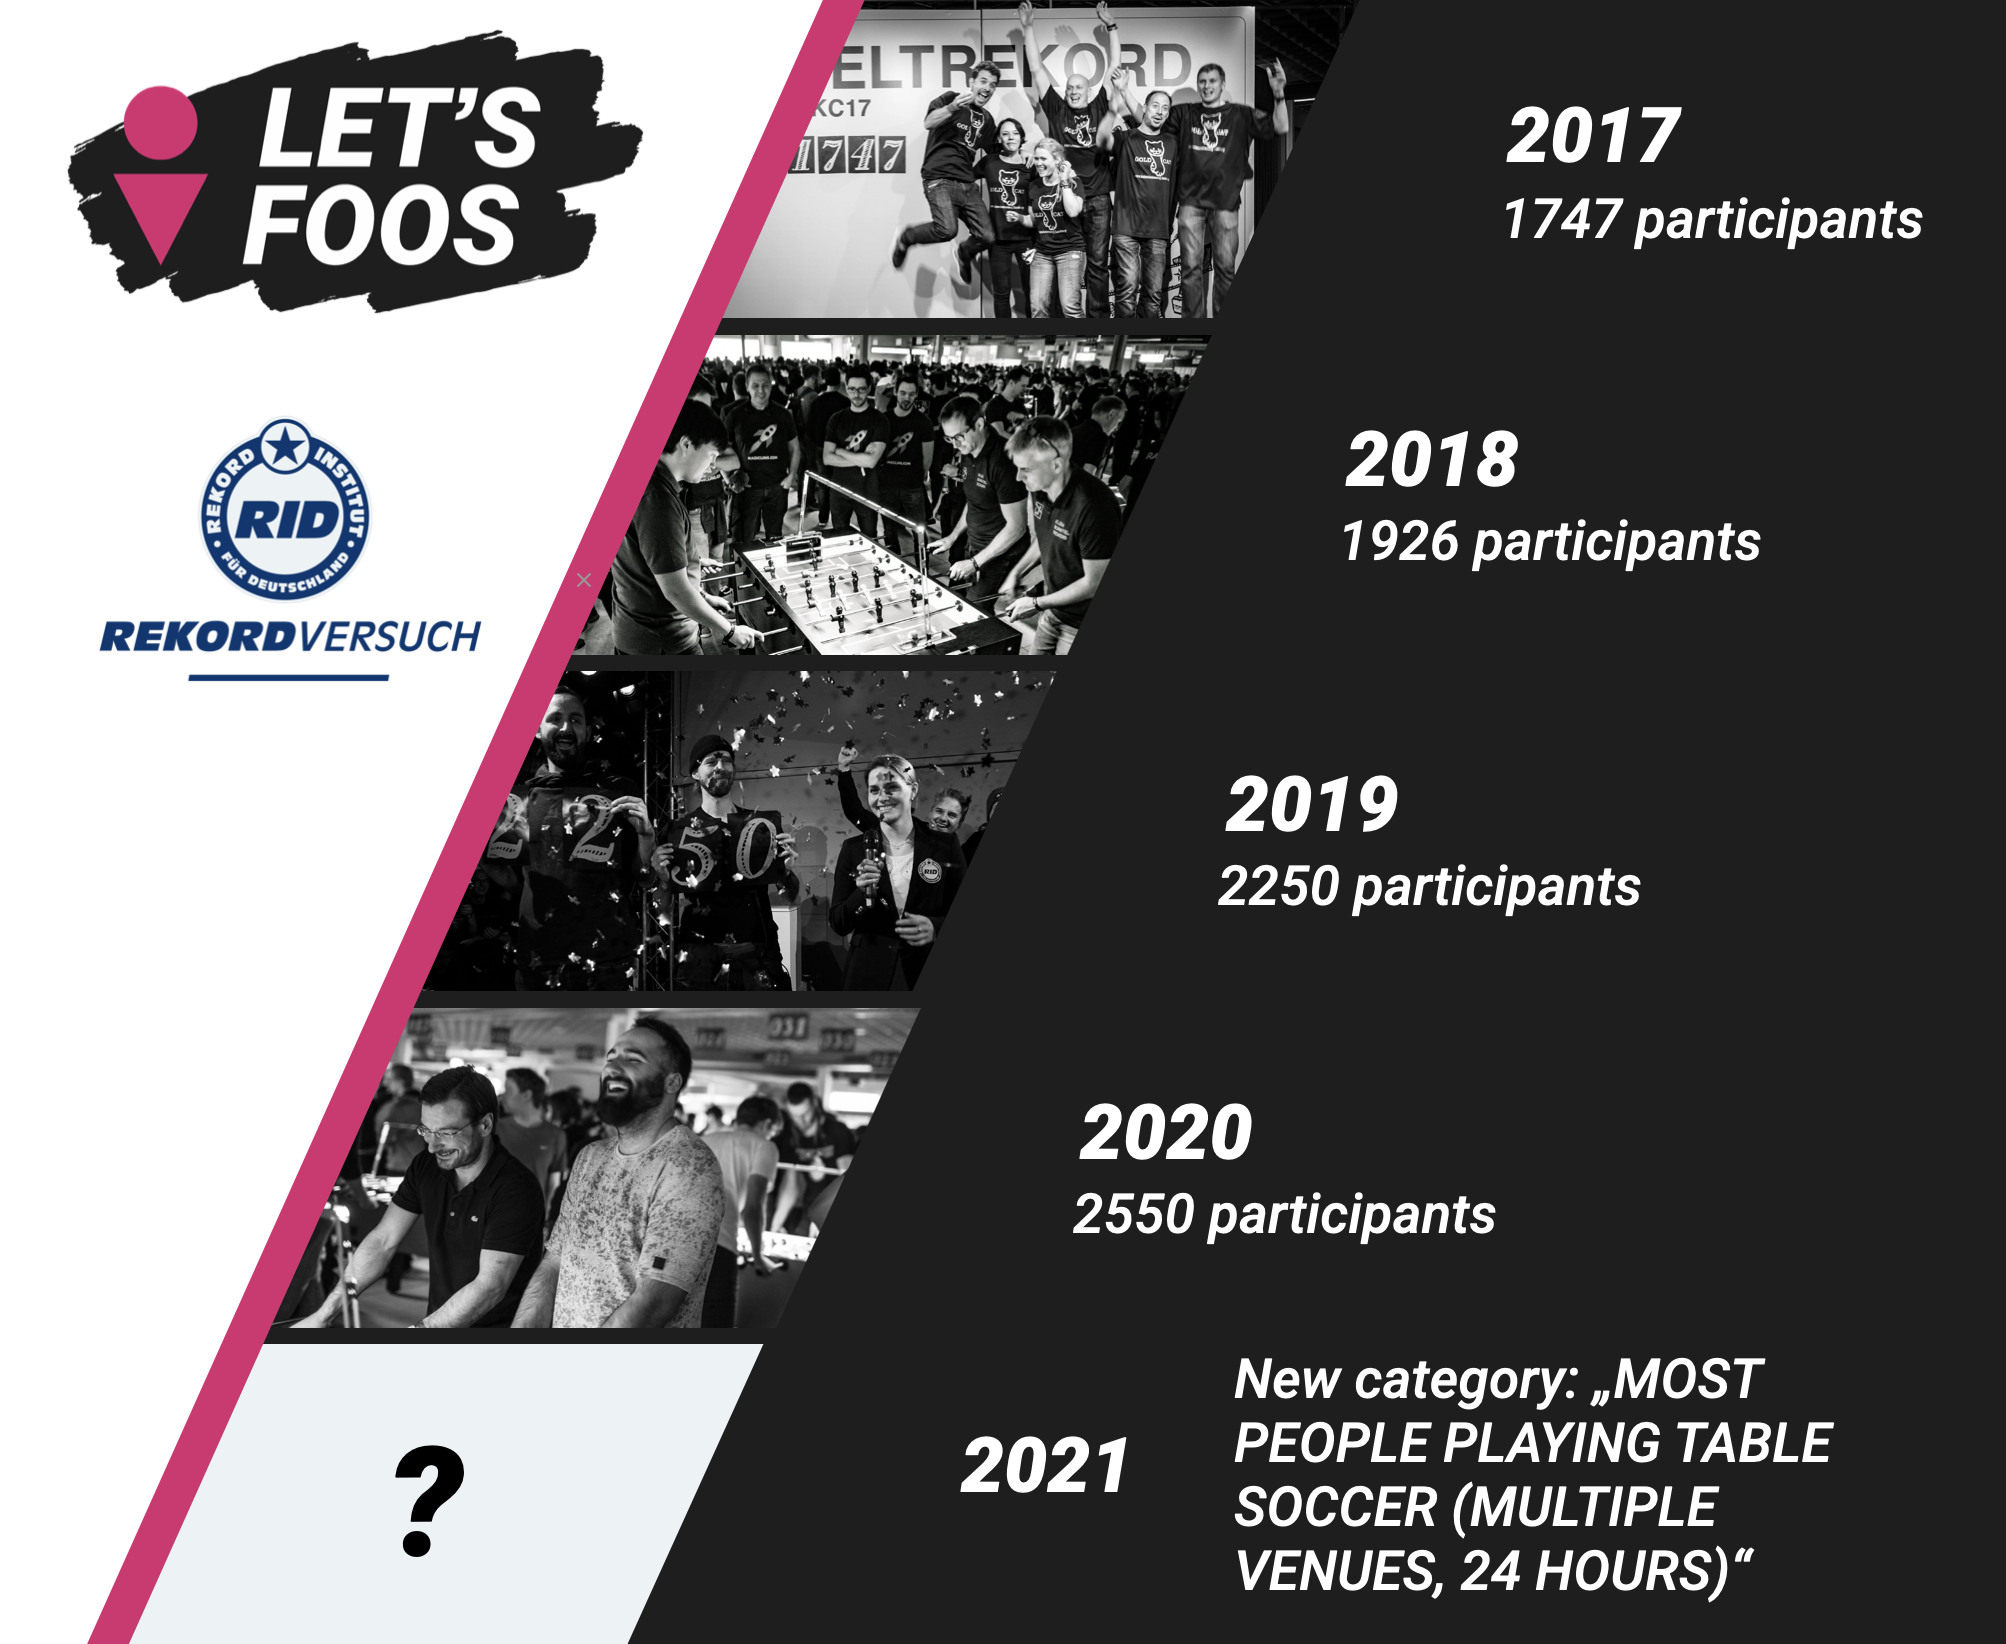 World Record 2021 - LET'S FOOS